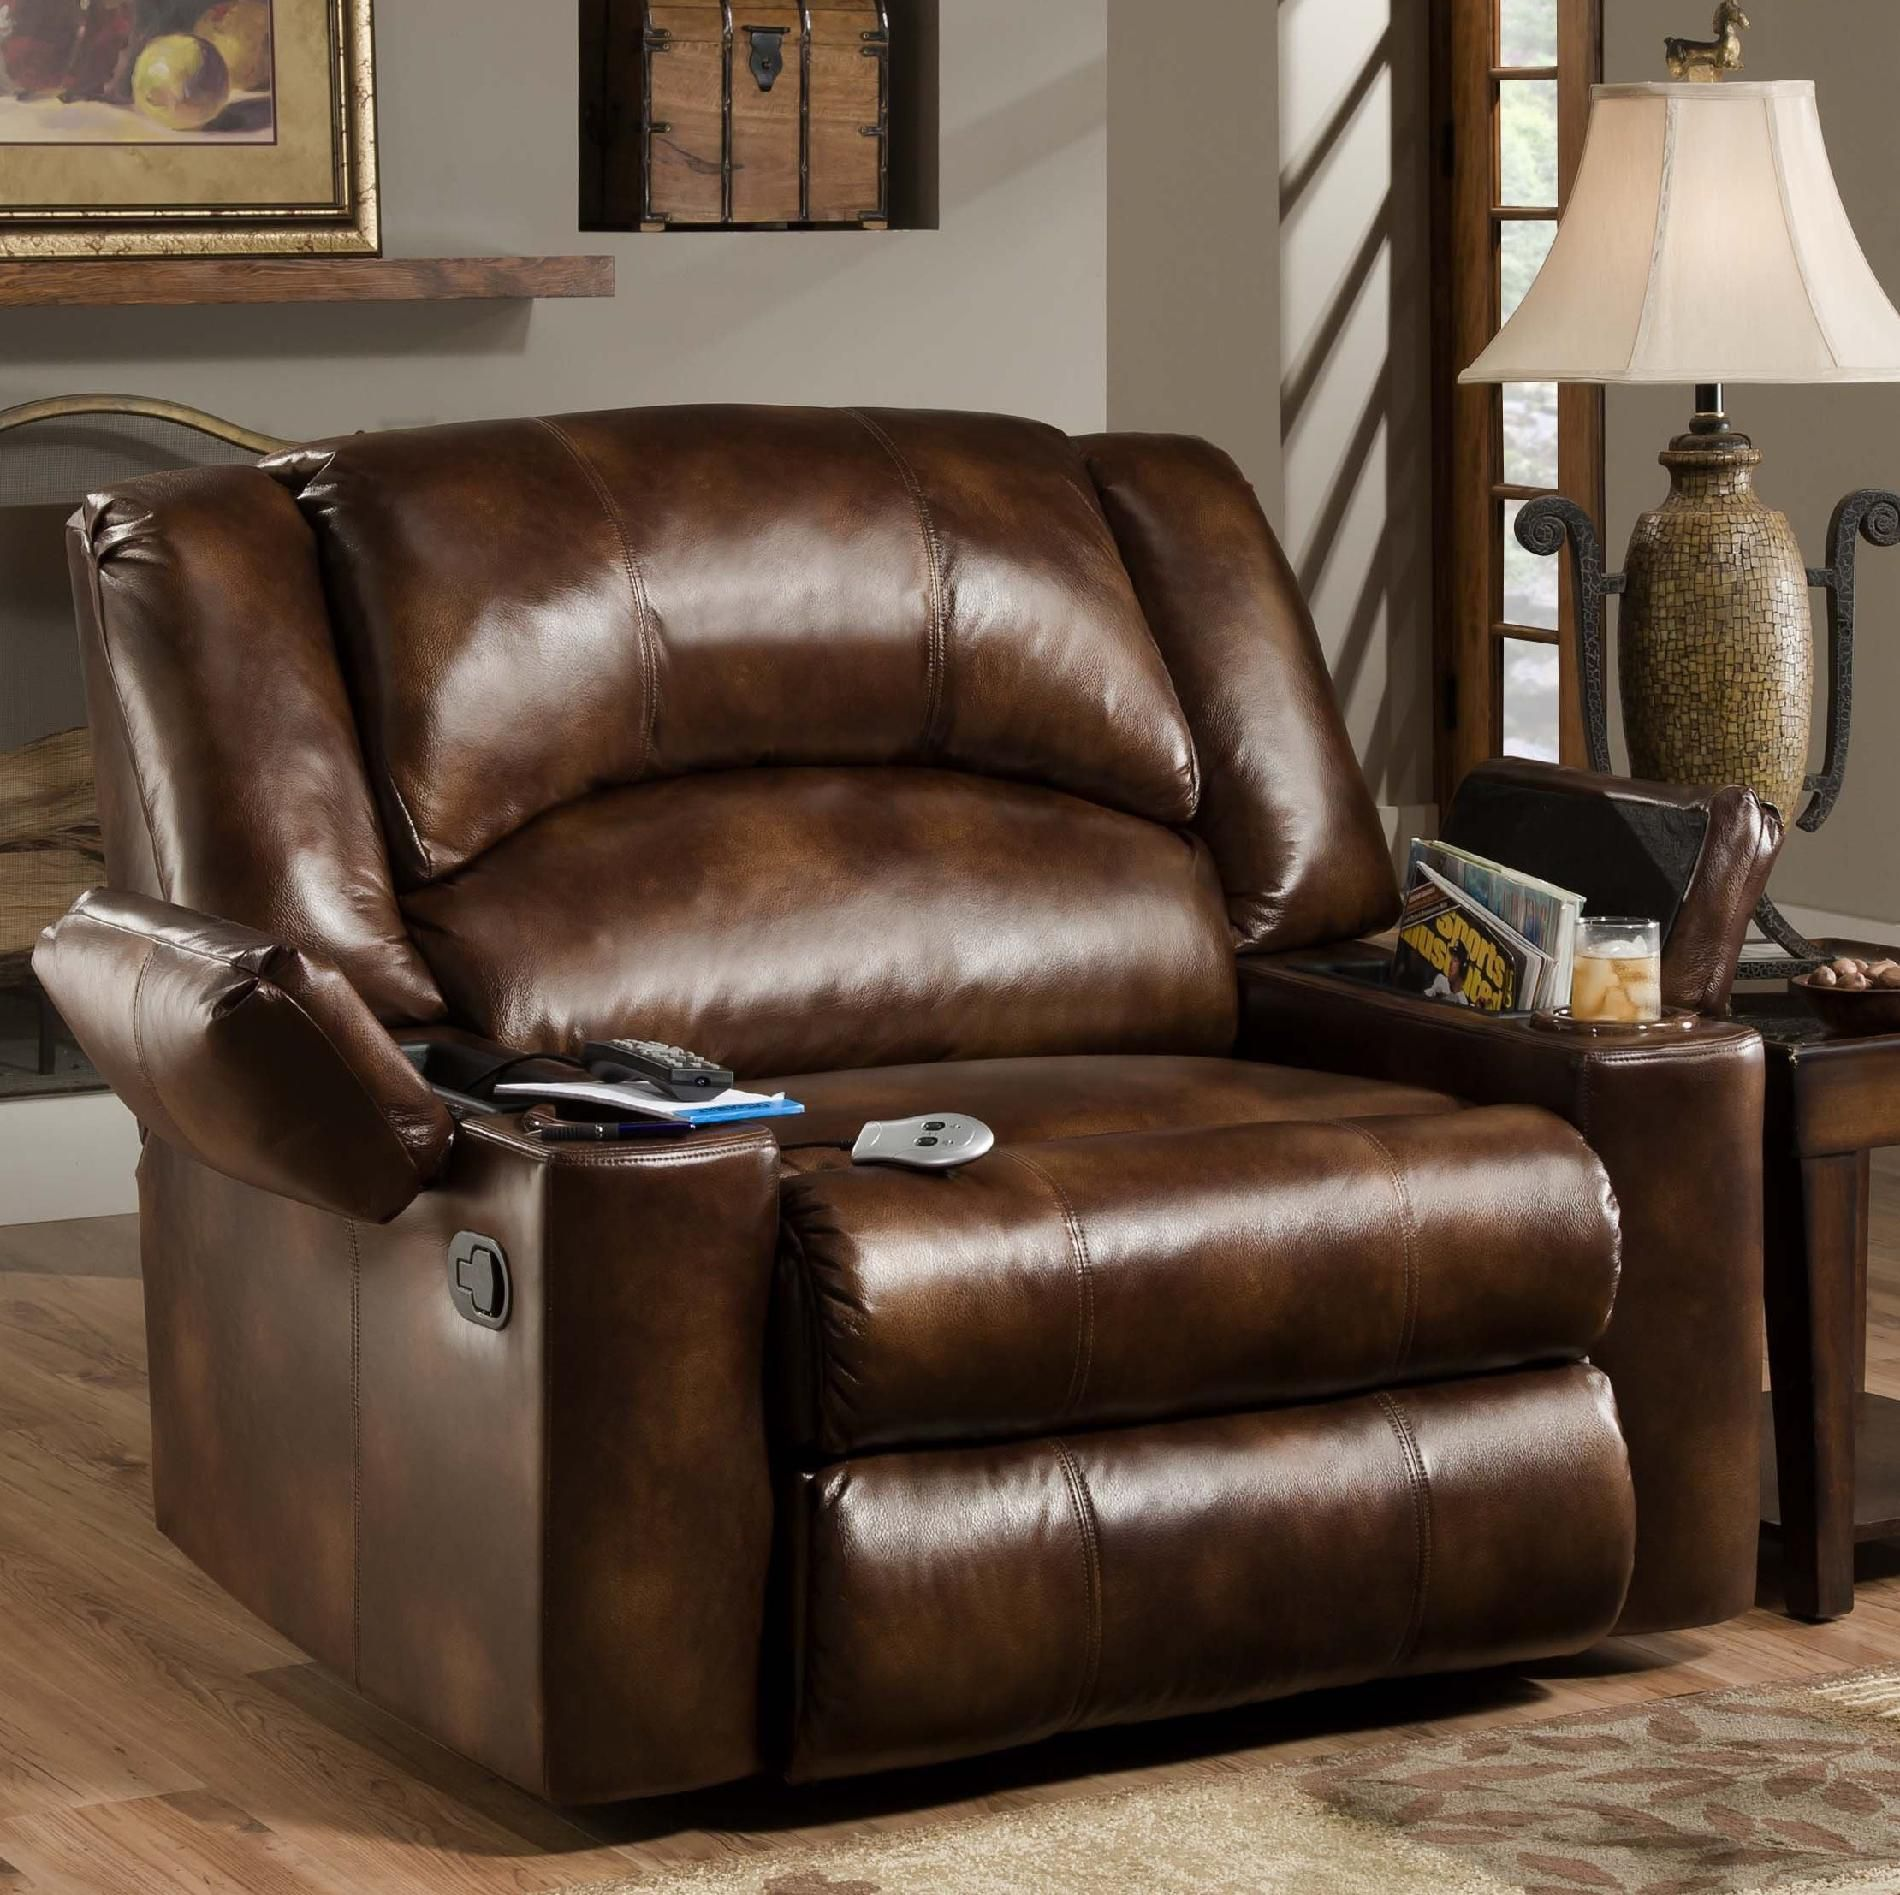 sears recliner chairs repair outside simmons boss massage find comfort and value at